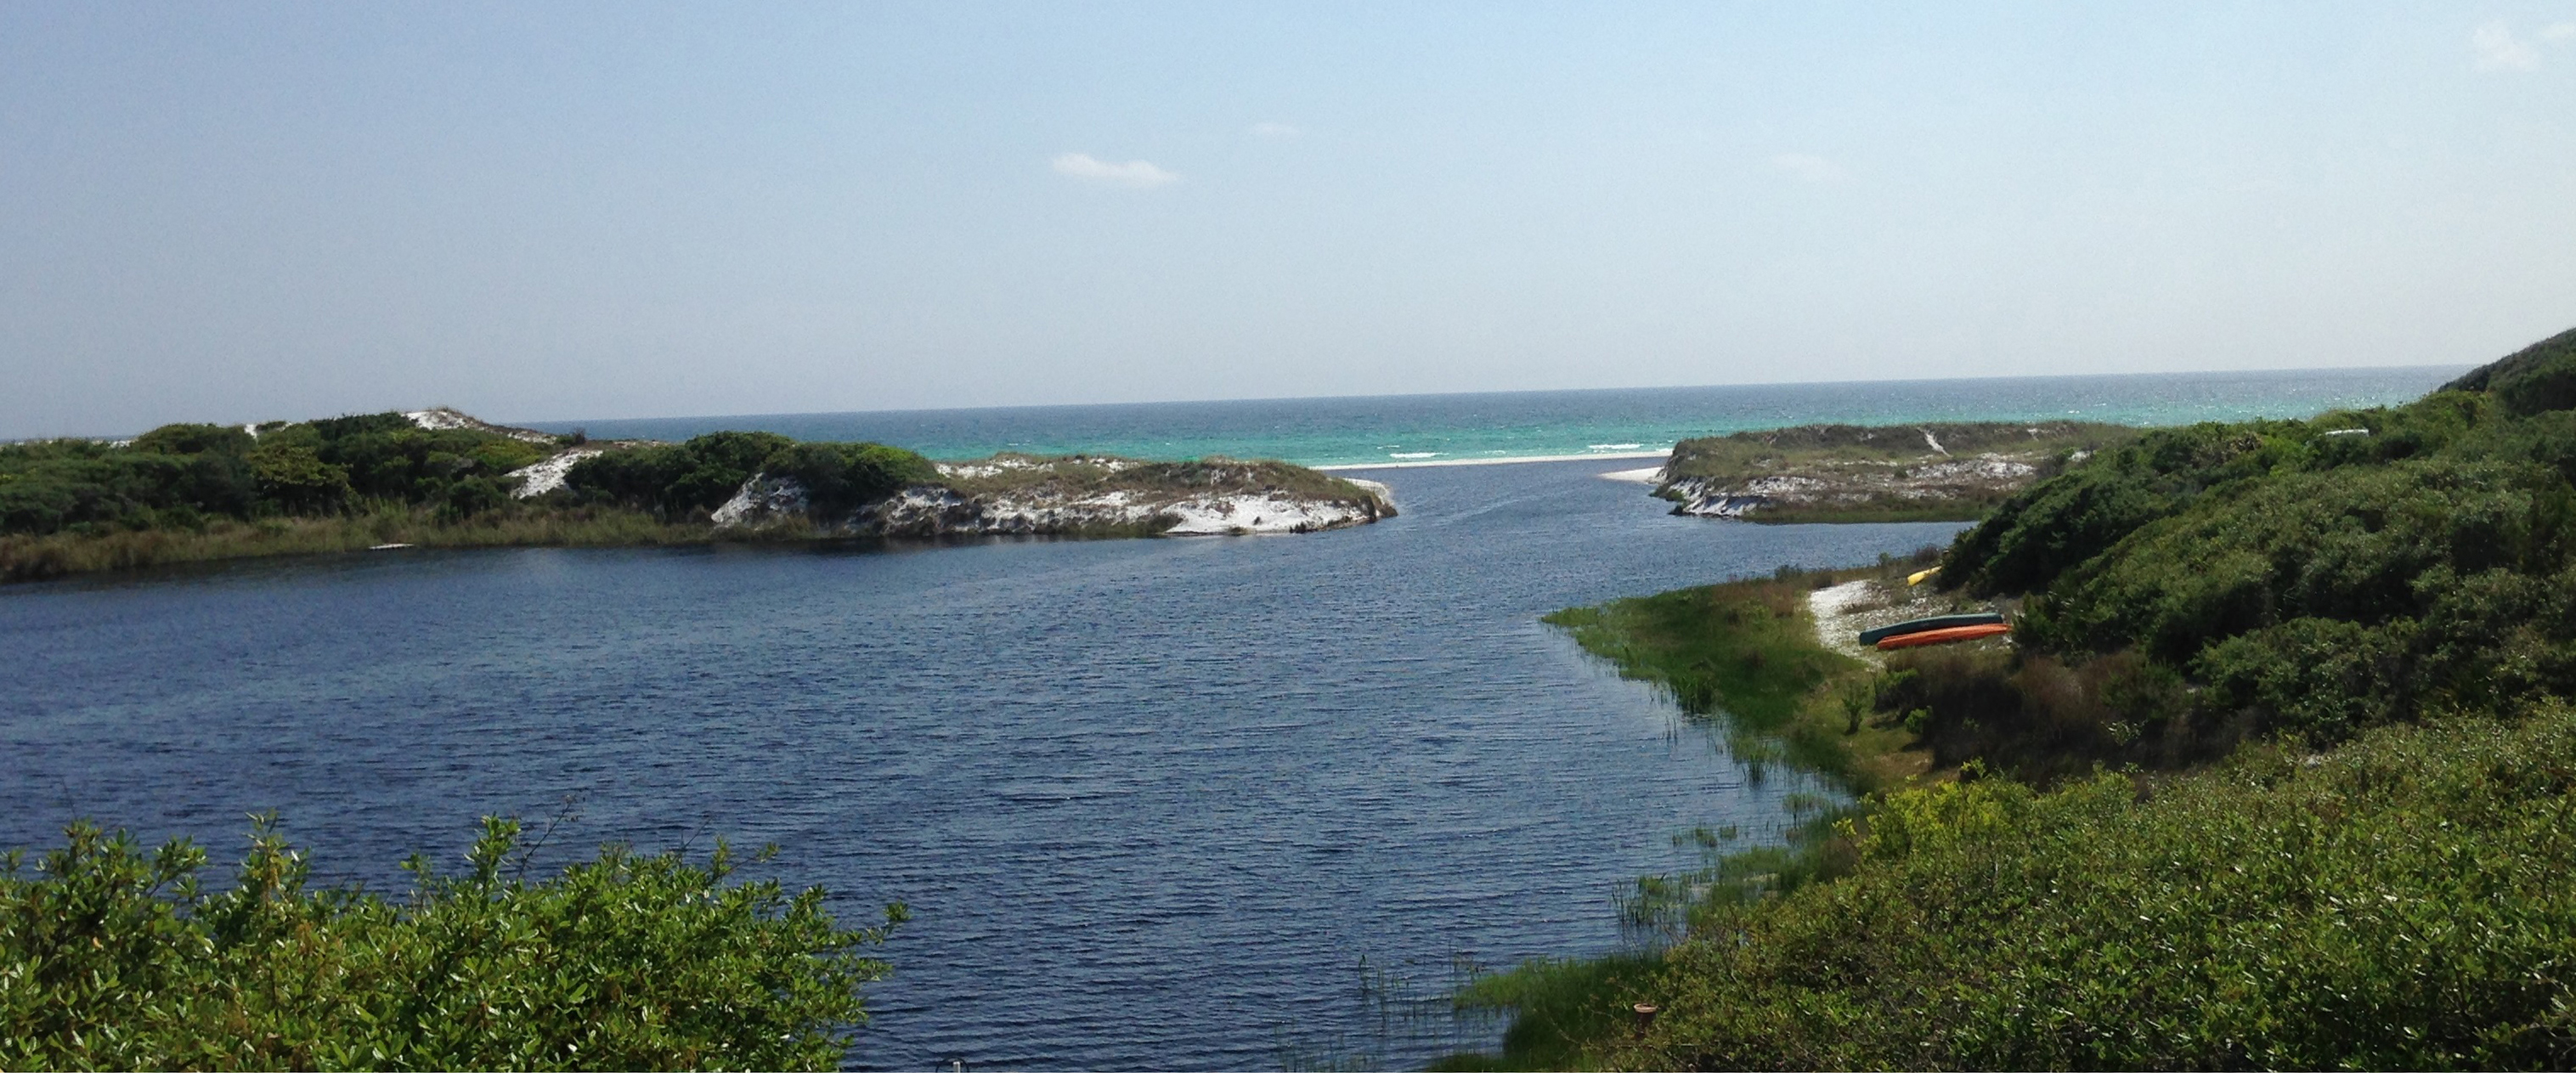 Florida Trustee Implementation Group Seeks Public Comment on Second Phase of the Florida Coastal Access Project